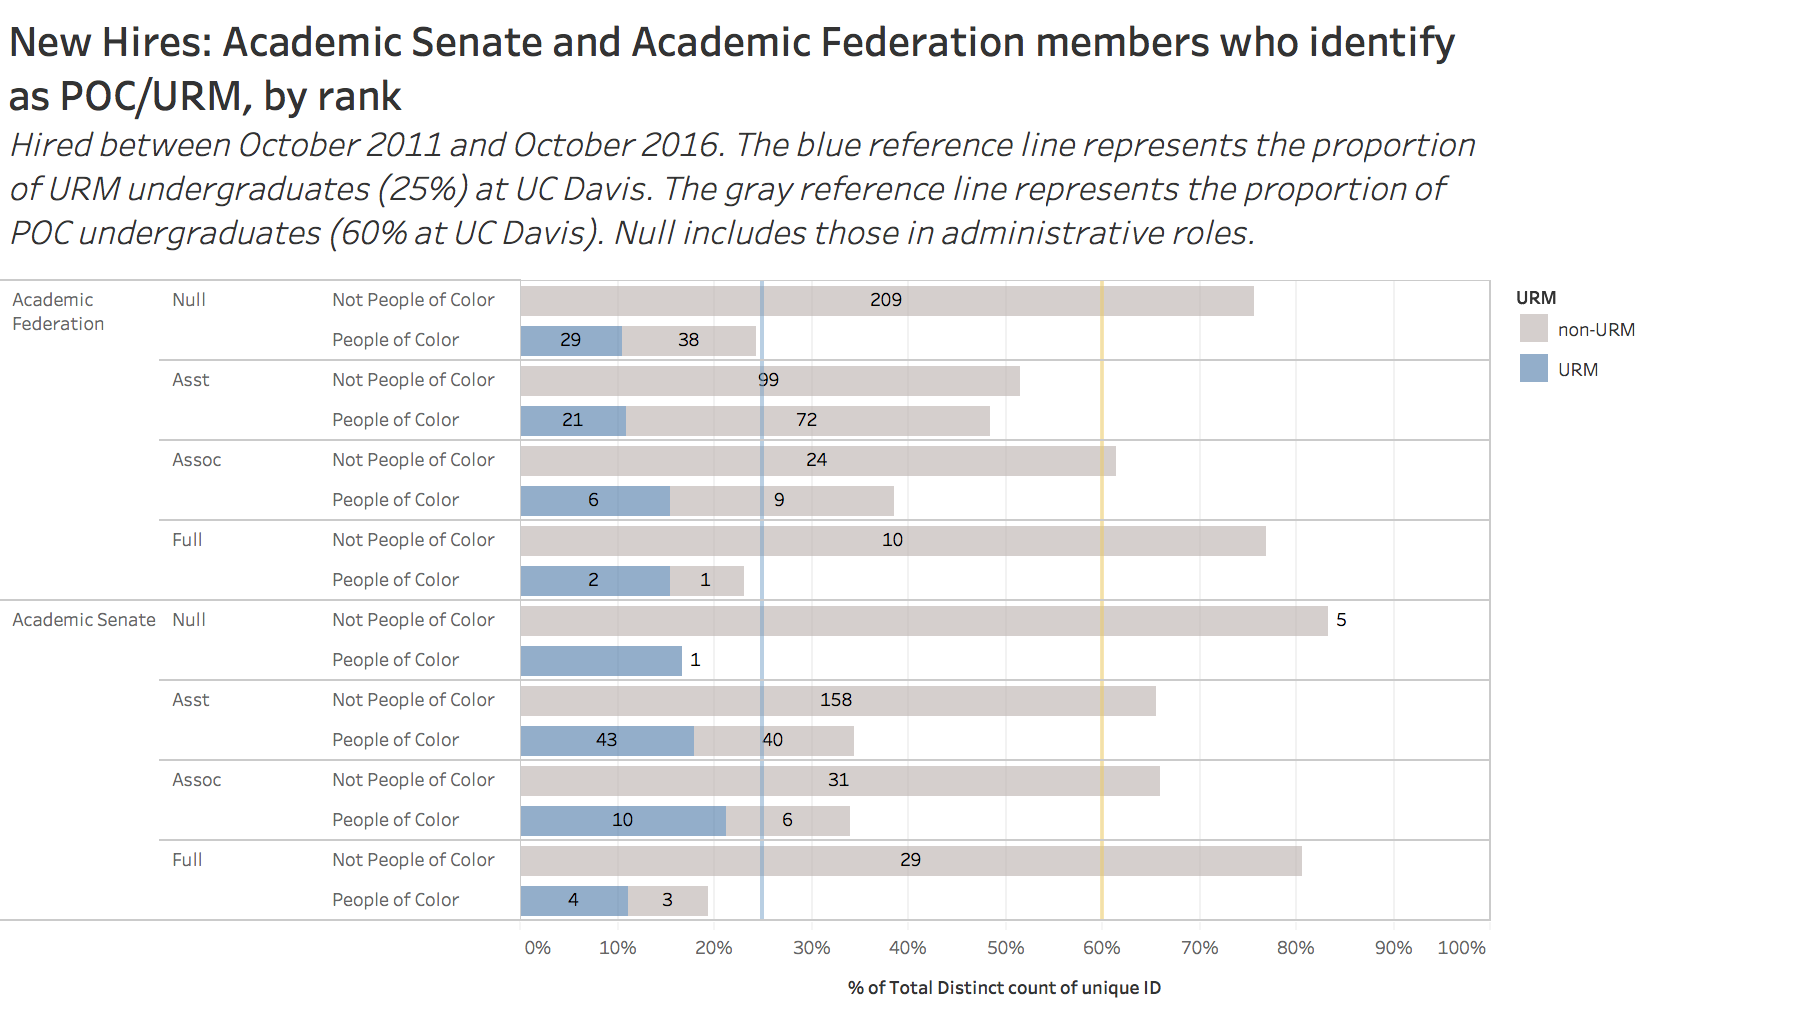 New hires: academic senate and academic federation members who identify as POC/URM by rank